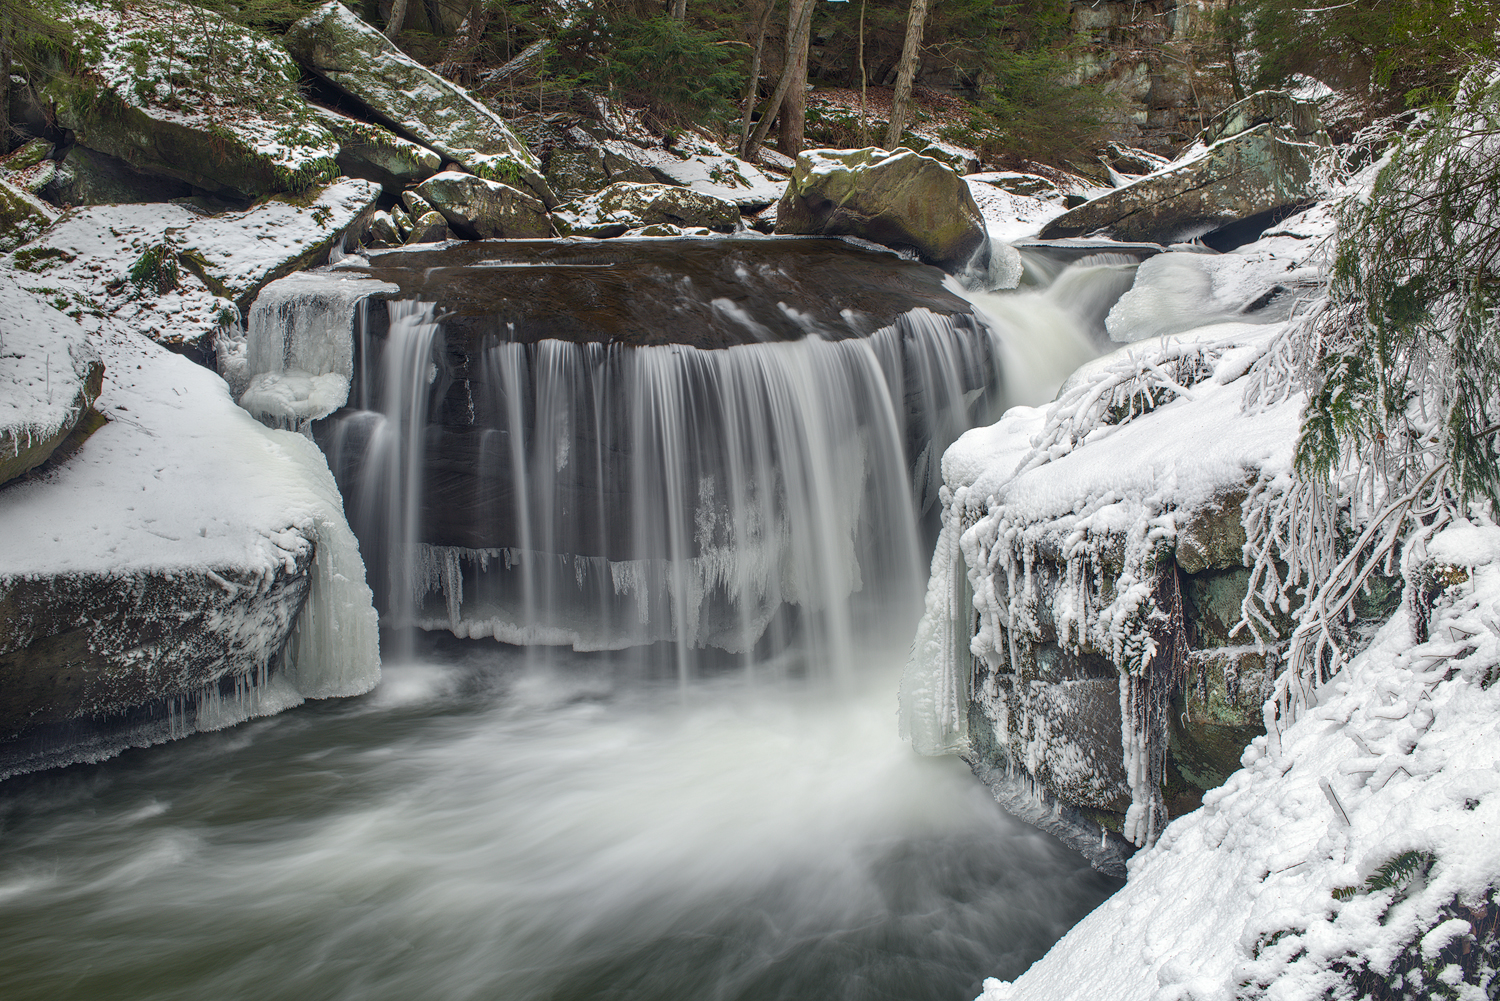 This view shows the large shelf that forms the Lower Falls. At over ten feet in height, the water at a high flow drops into a deep plunge pool.